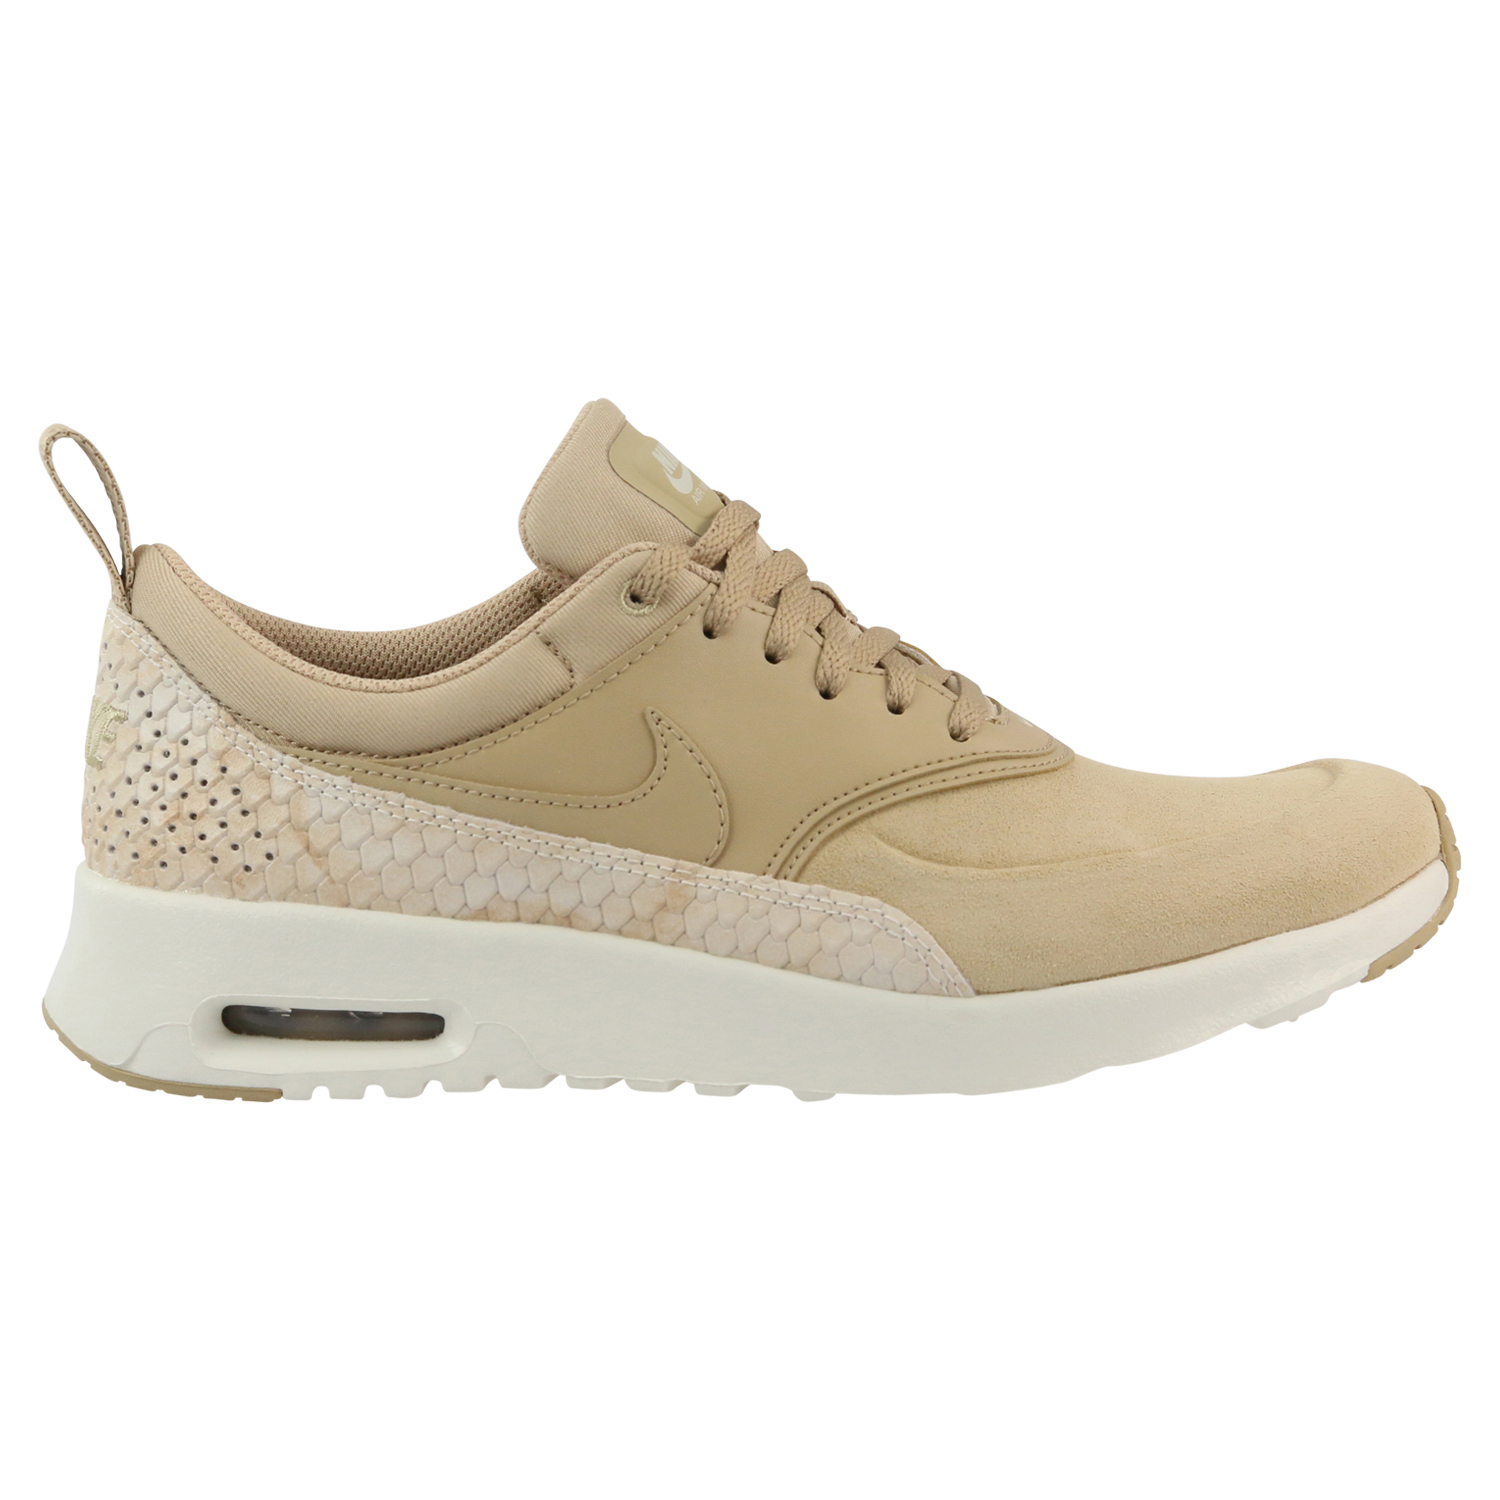 nike air max thea premium schuhe turnschuhe sneaker damen 616723 203 beige ebay. Black Bedroom Furniture Sets. Home Design Ideas